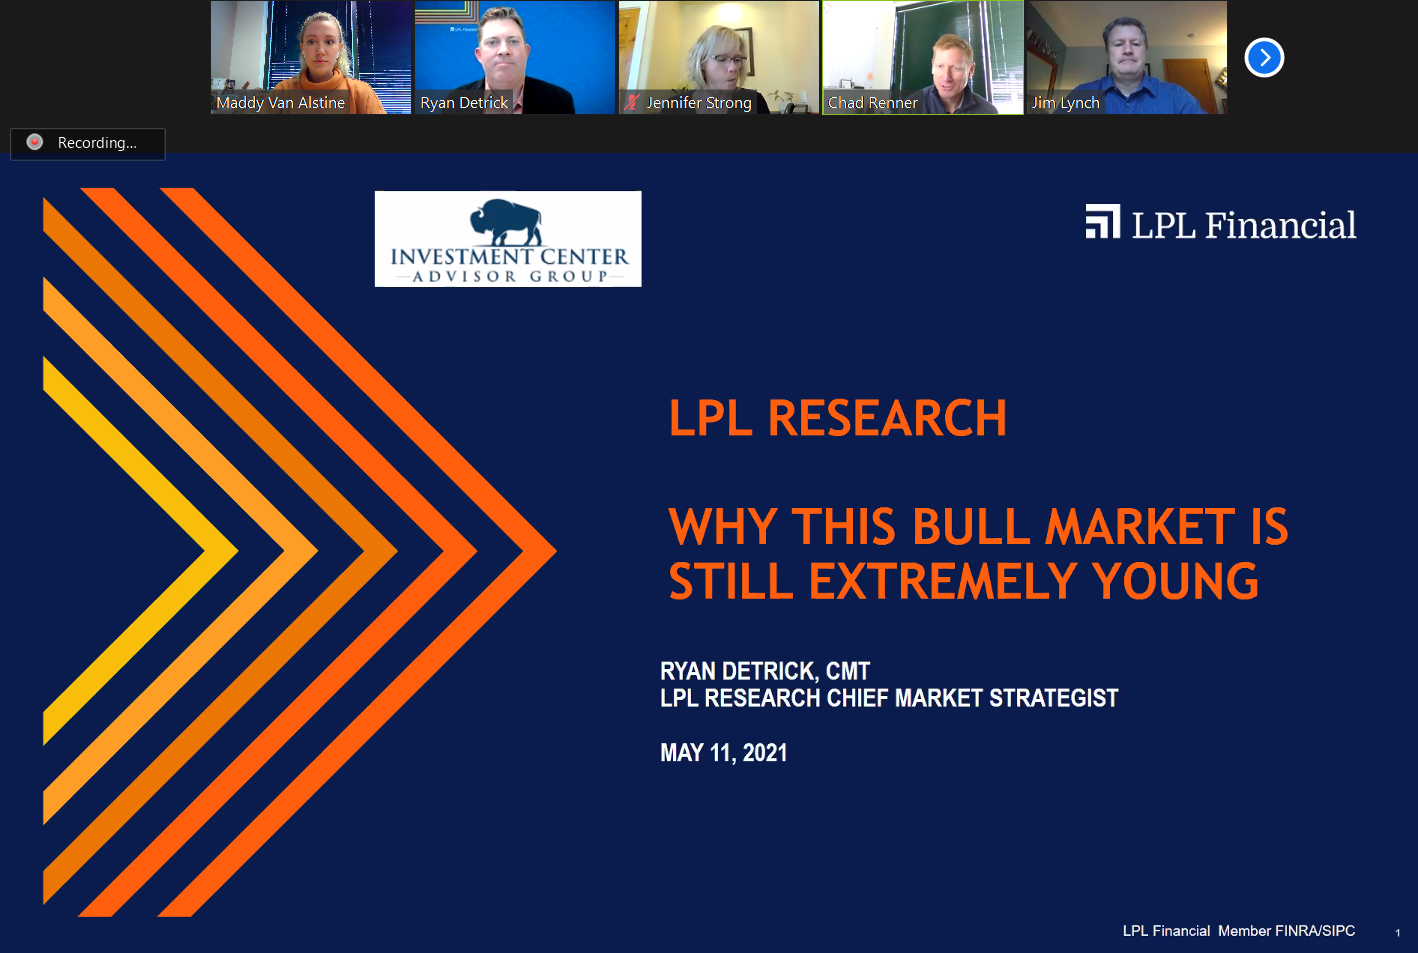 Why This Bull Market is Still Extremely Young